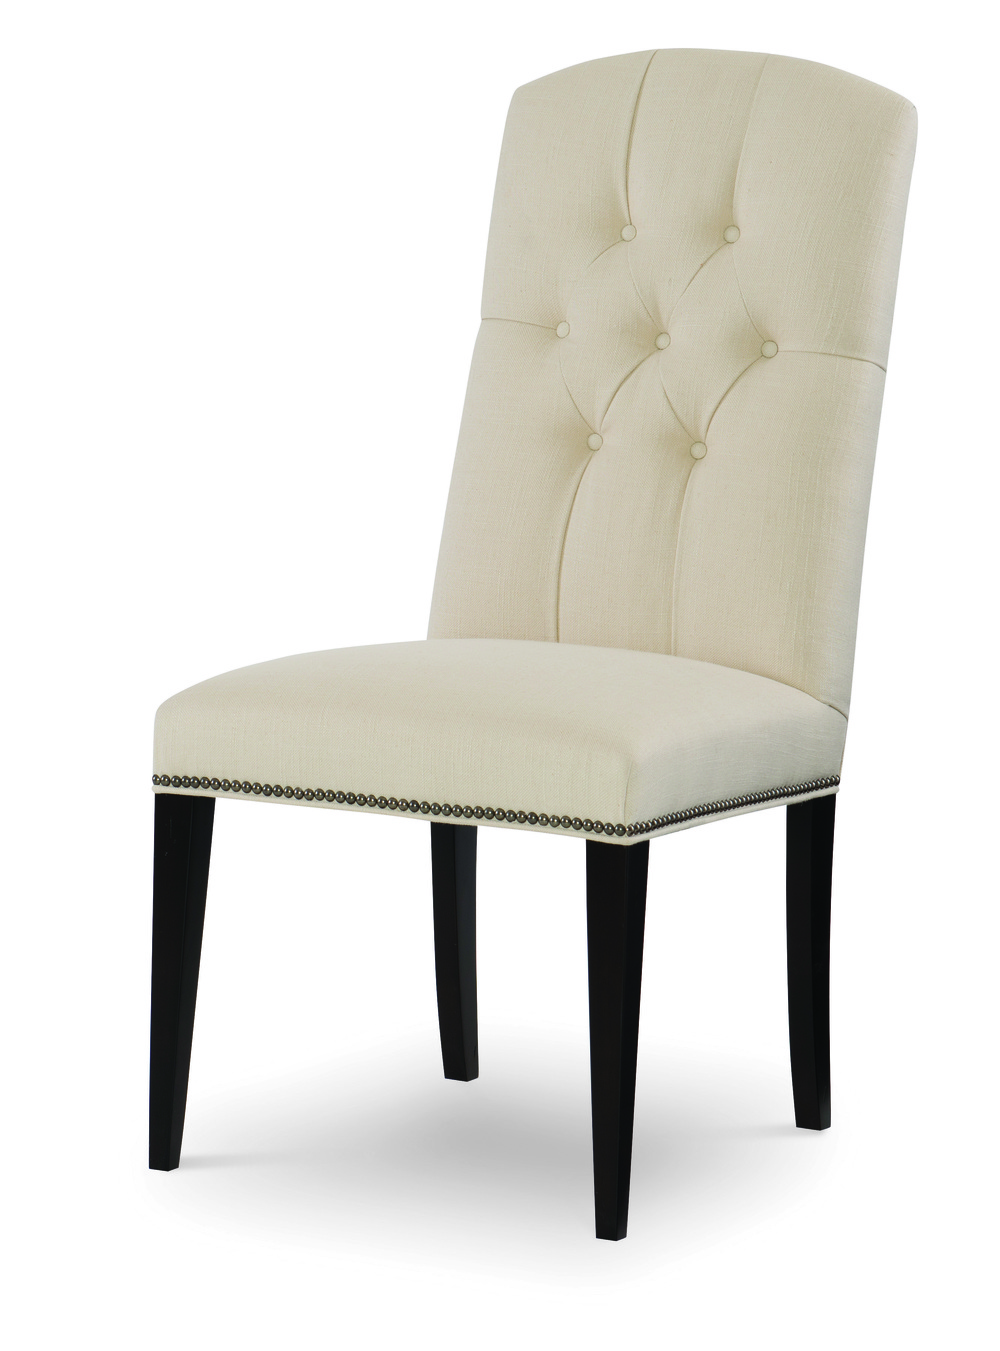 Century Furniture - Lorne Tufted Side Chair